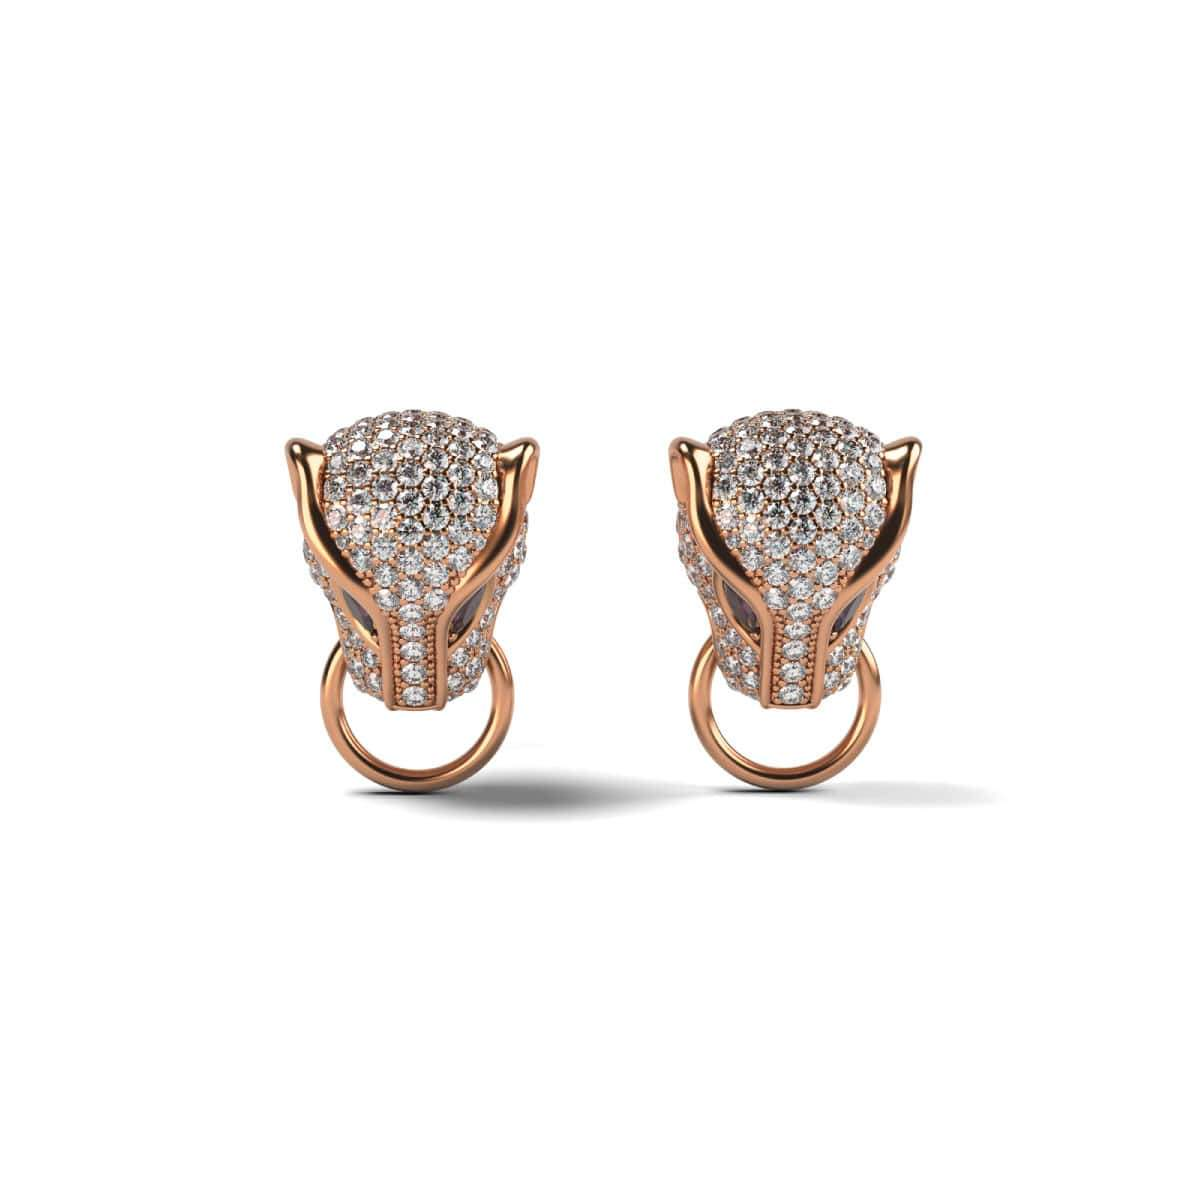 Panthera by Keysi Sayago | 18k Rose Gold | Cubic Zirconia Crystal Earrings